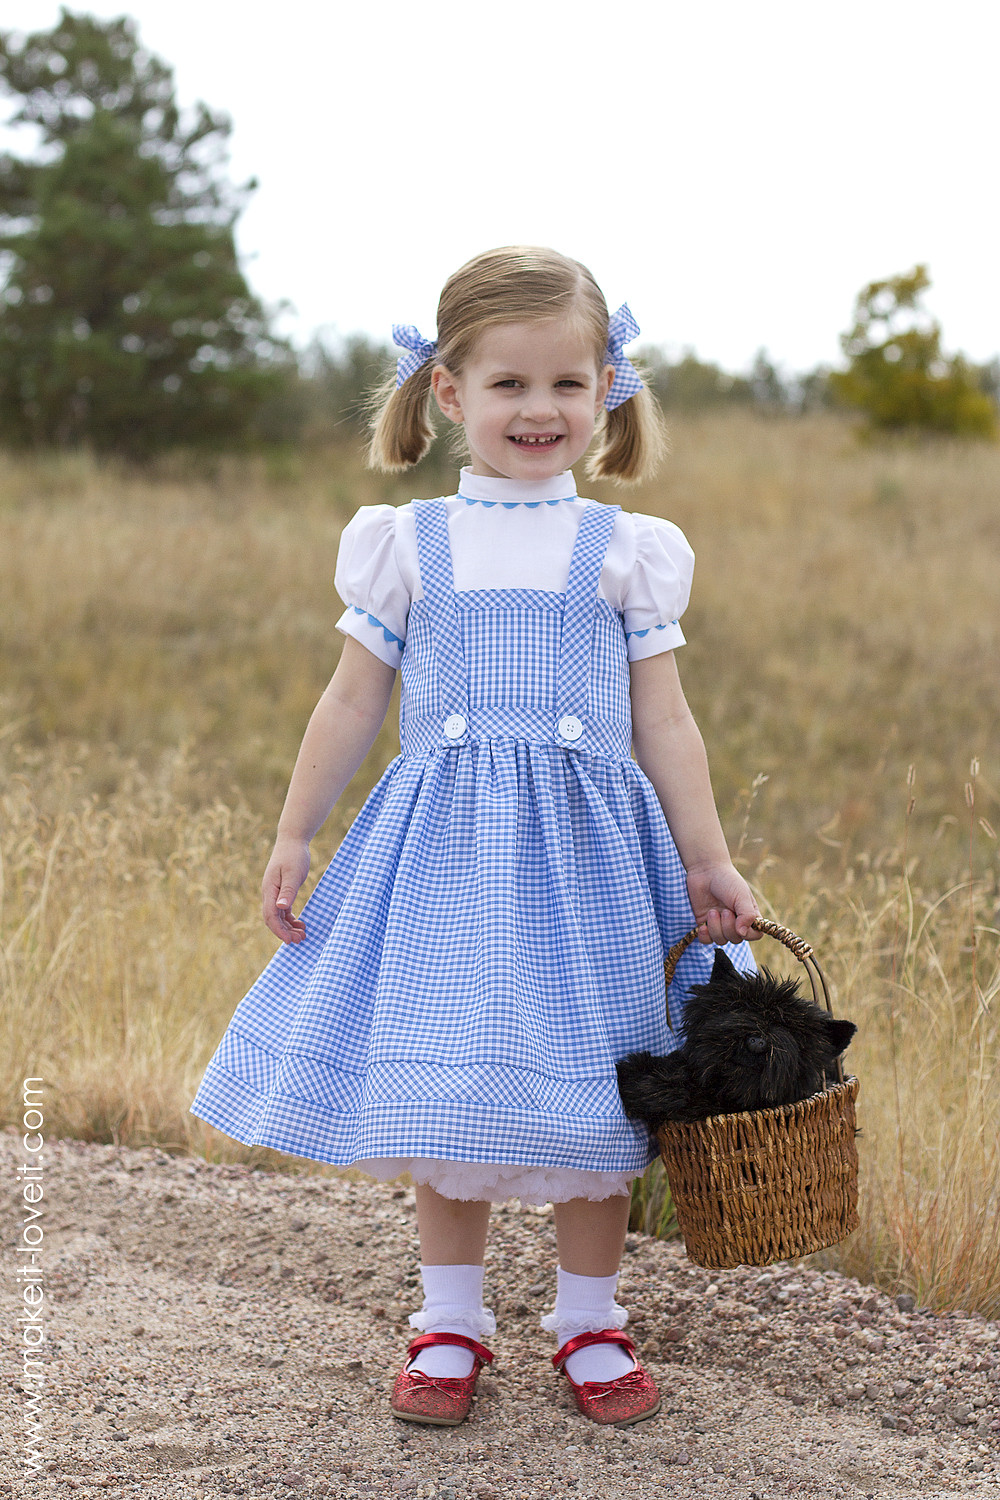 Best ideas about DIY Dorothy Costume No Sew . Save or Pin A HOOP SKIRT a sturdy and inexpensive version Now.